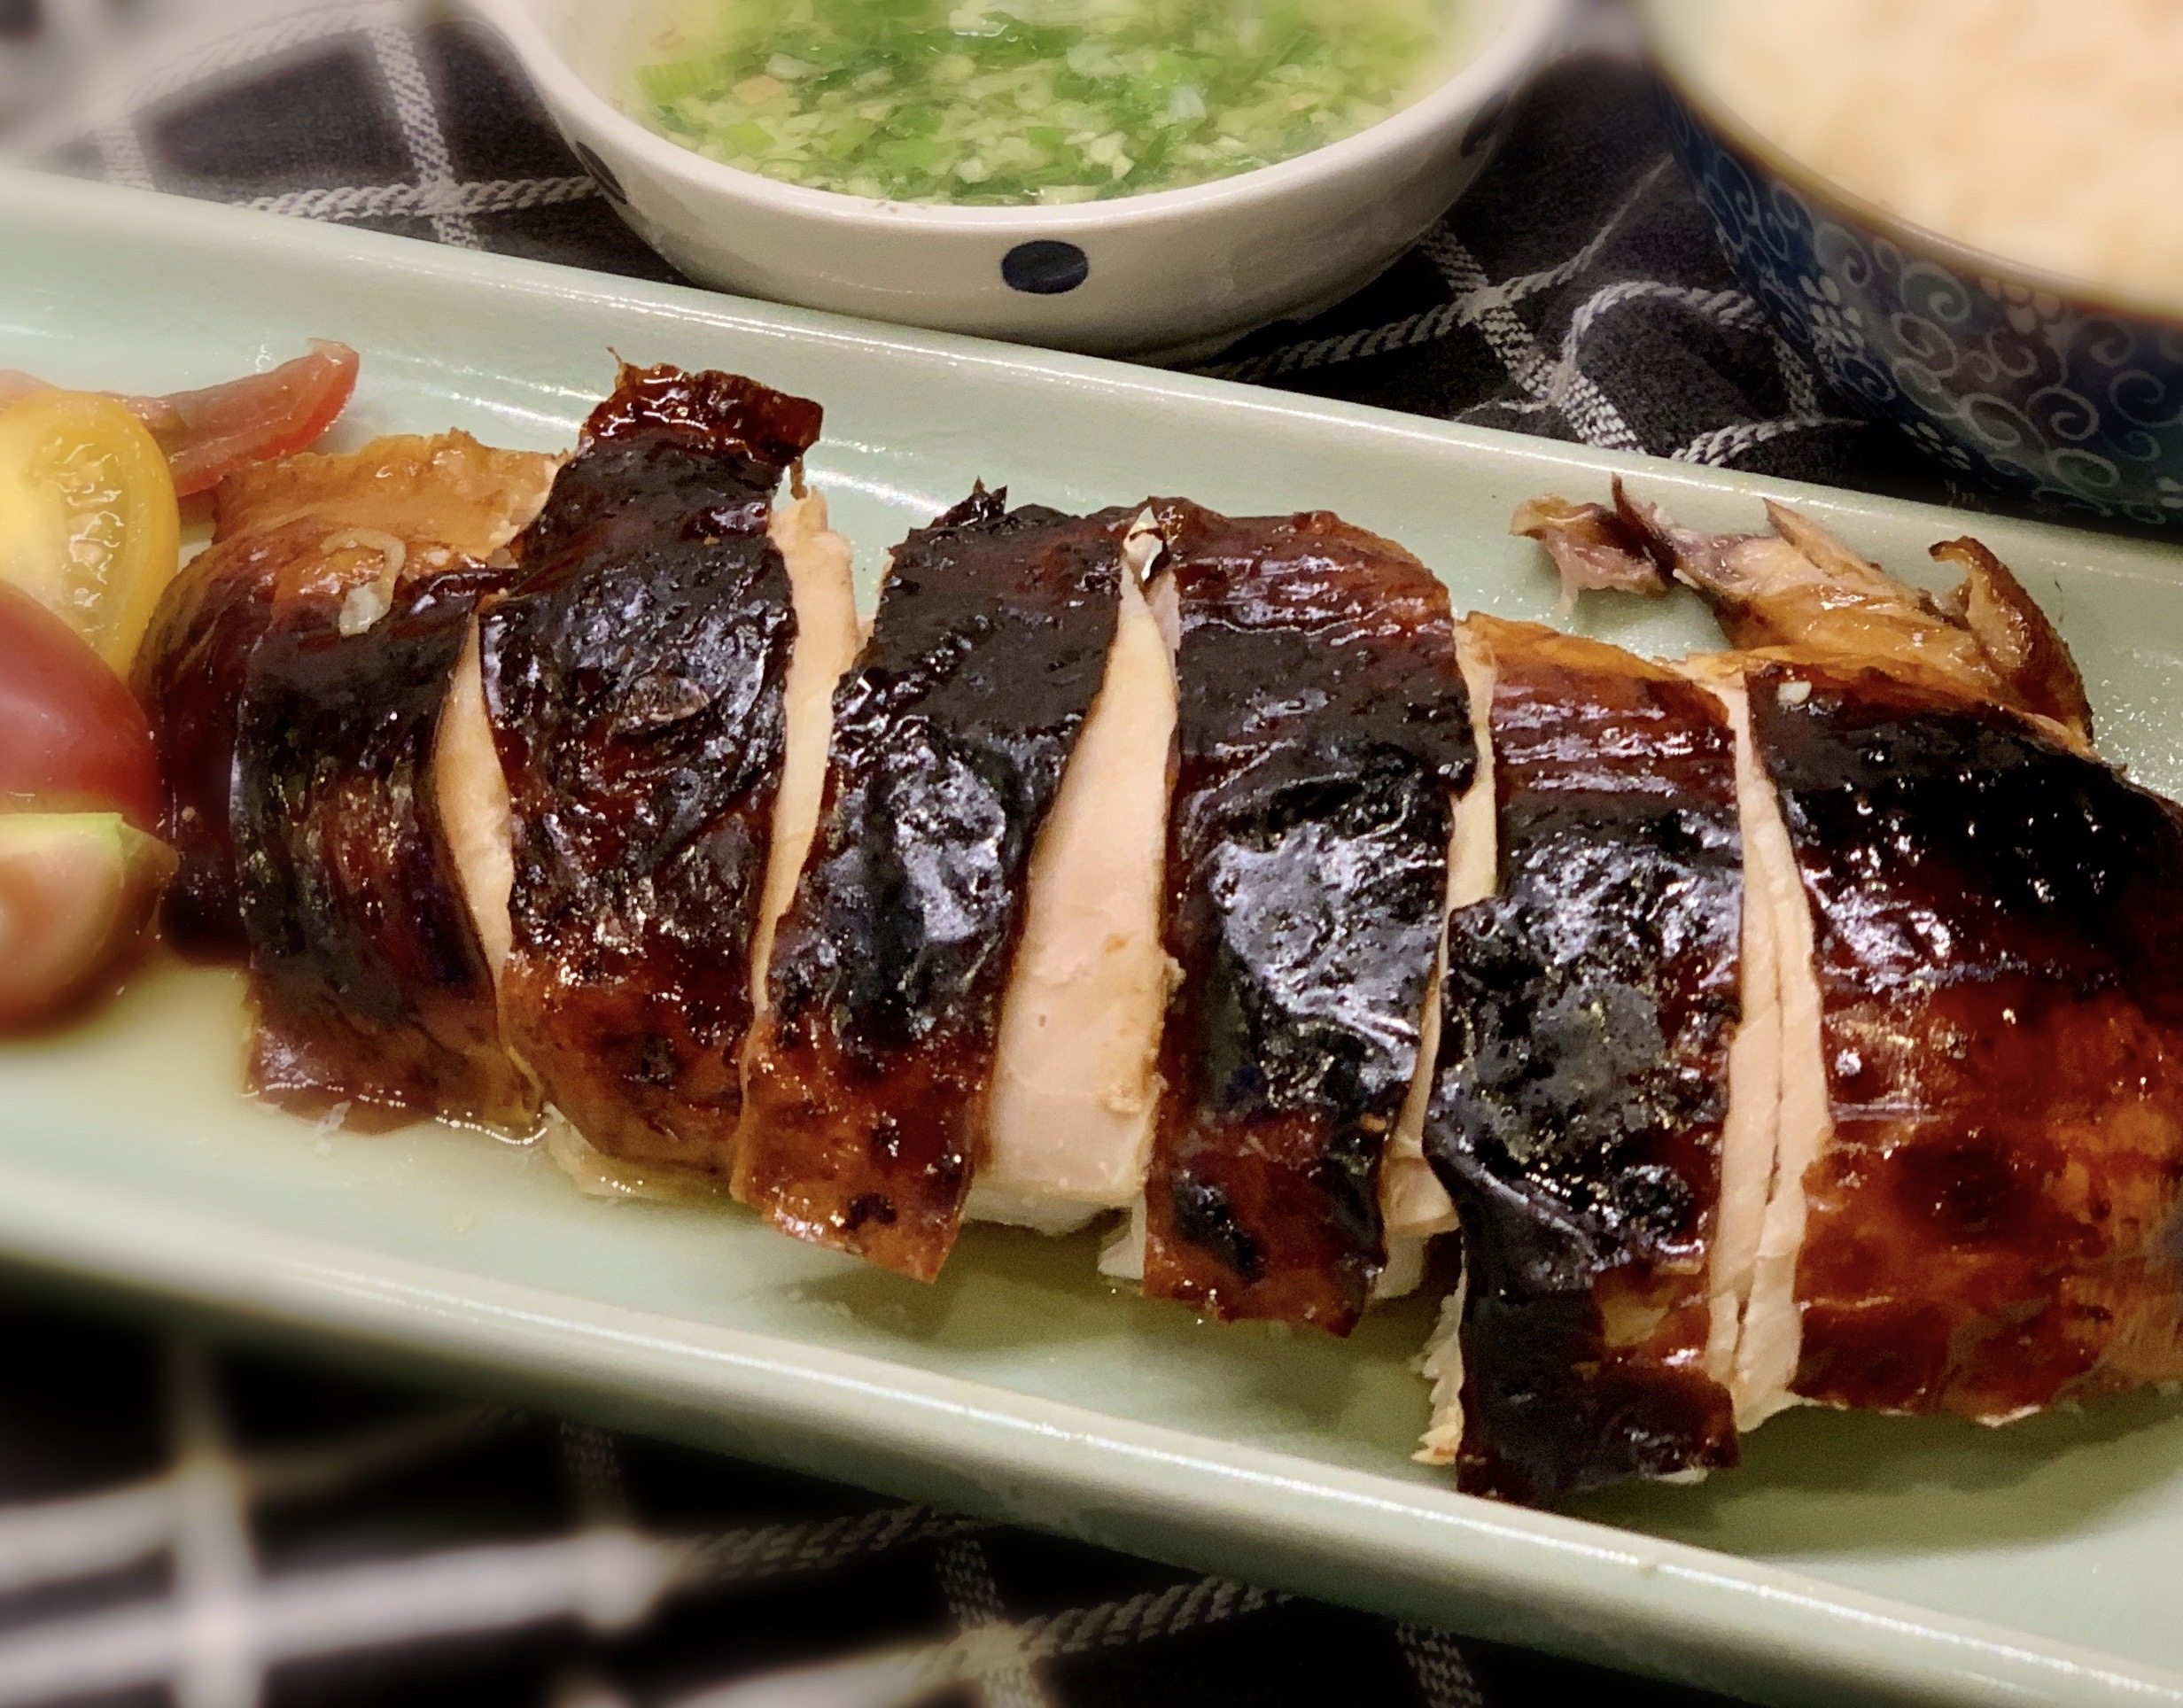 Roasted Soy Chicken with Spring Onion and Ginger Sauce酱油烤鸡jiàng yóu kǎo jī